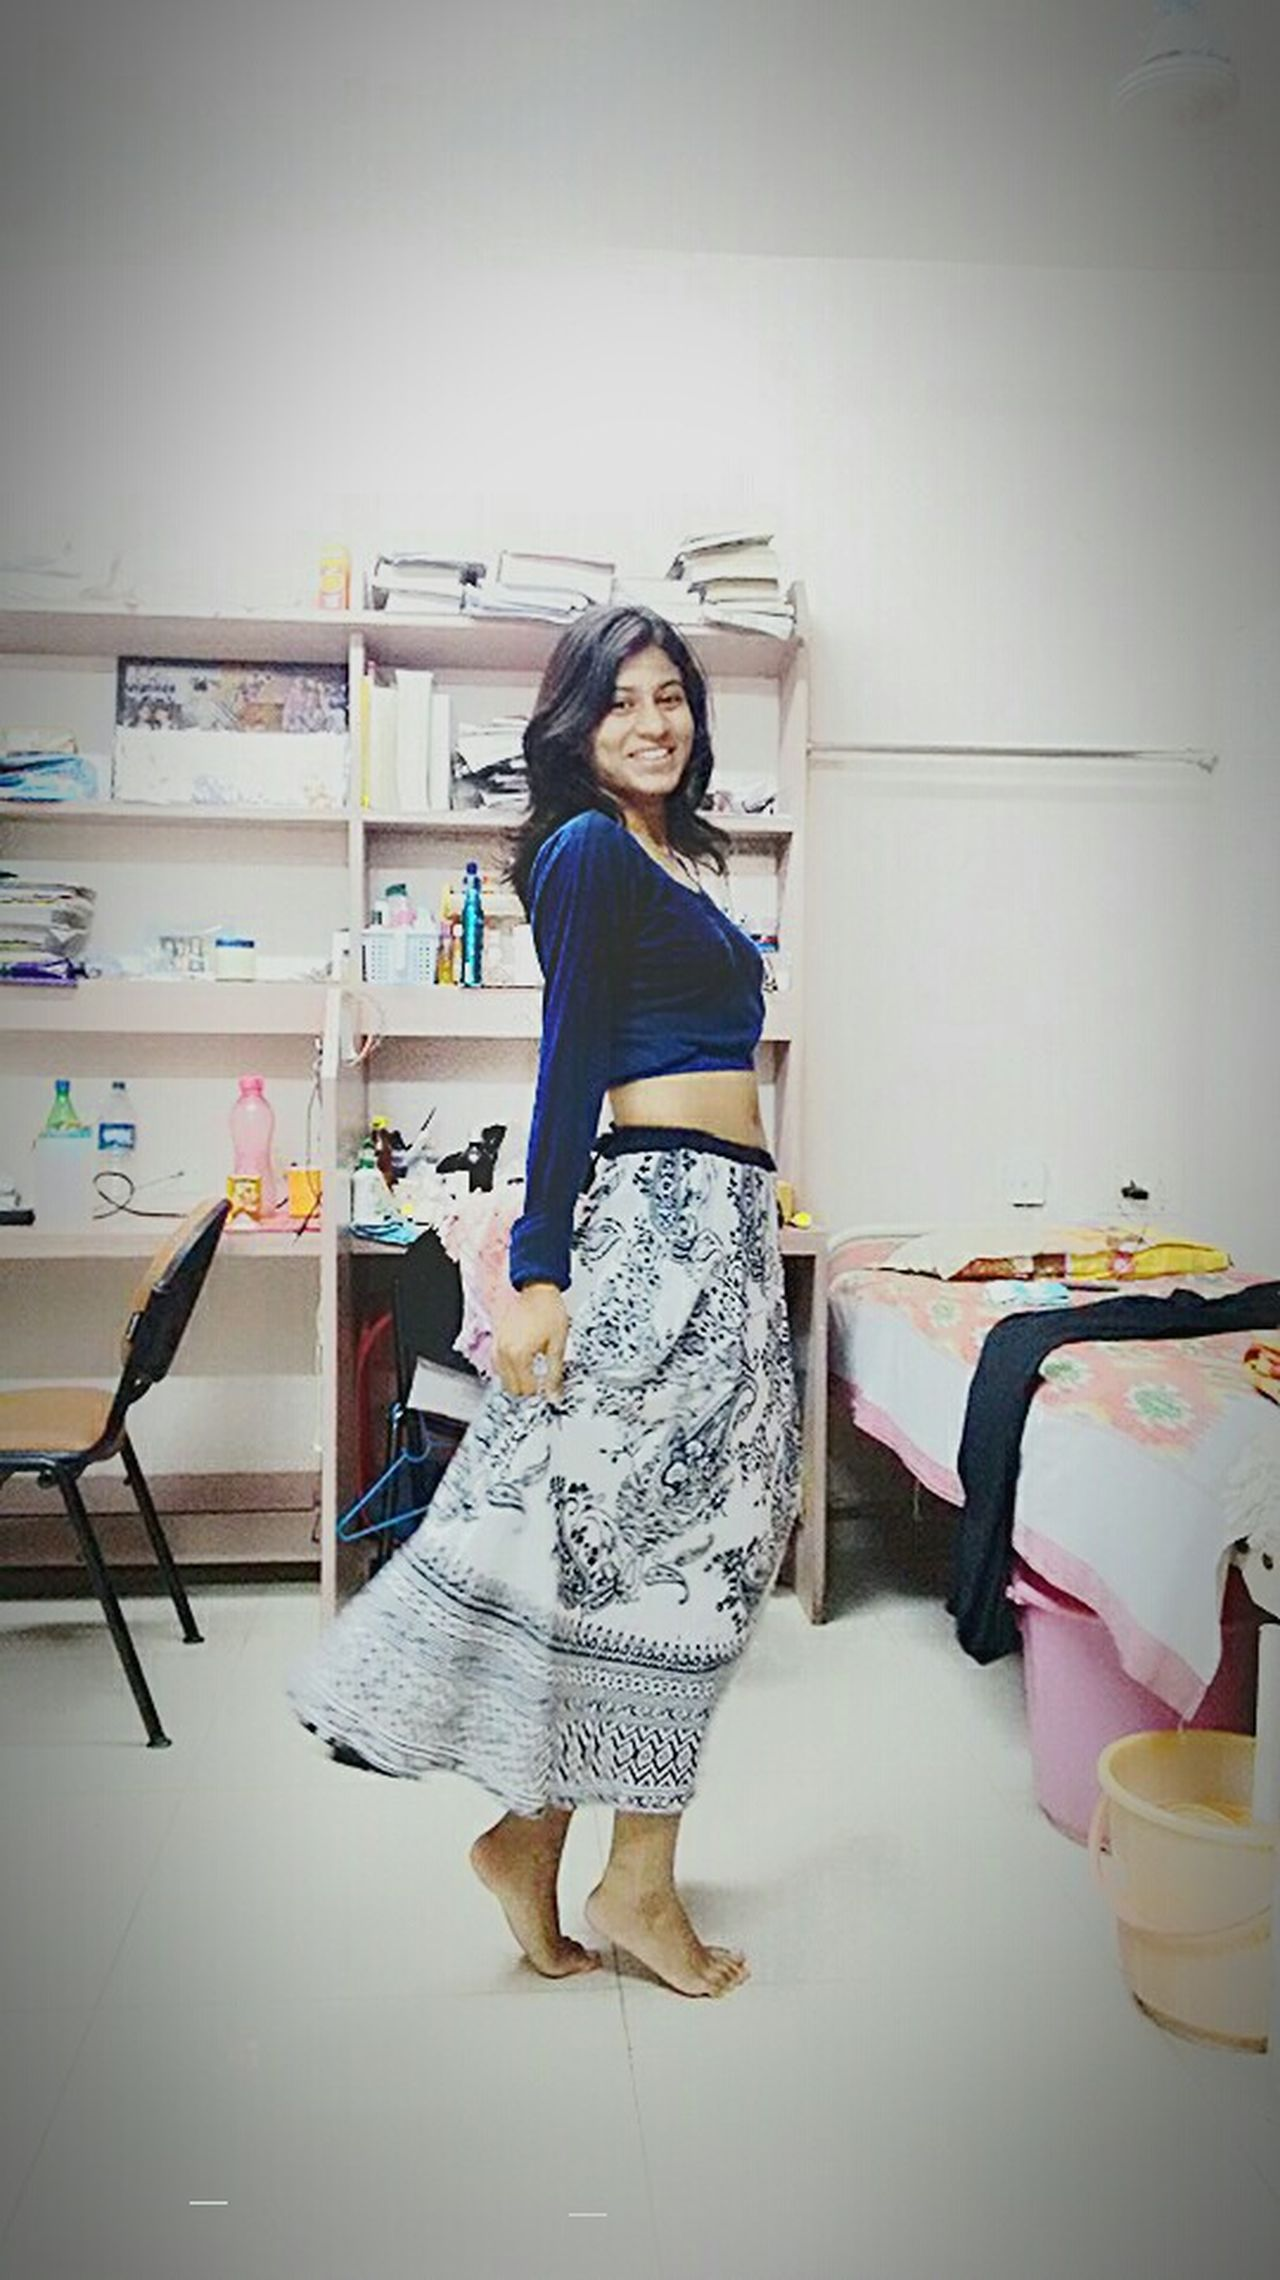 Blue Taking Photos That's Me Crop Top Ethinic Fusionculture Hand-made Silky Hair Dimples&Smile Womensfashion Potrait Of Woman Potrait_photography Waist Dance Photography Indian Culture  Indianstyle Khadi Printing Smile Is The Best Make-up A Girl Can Wear